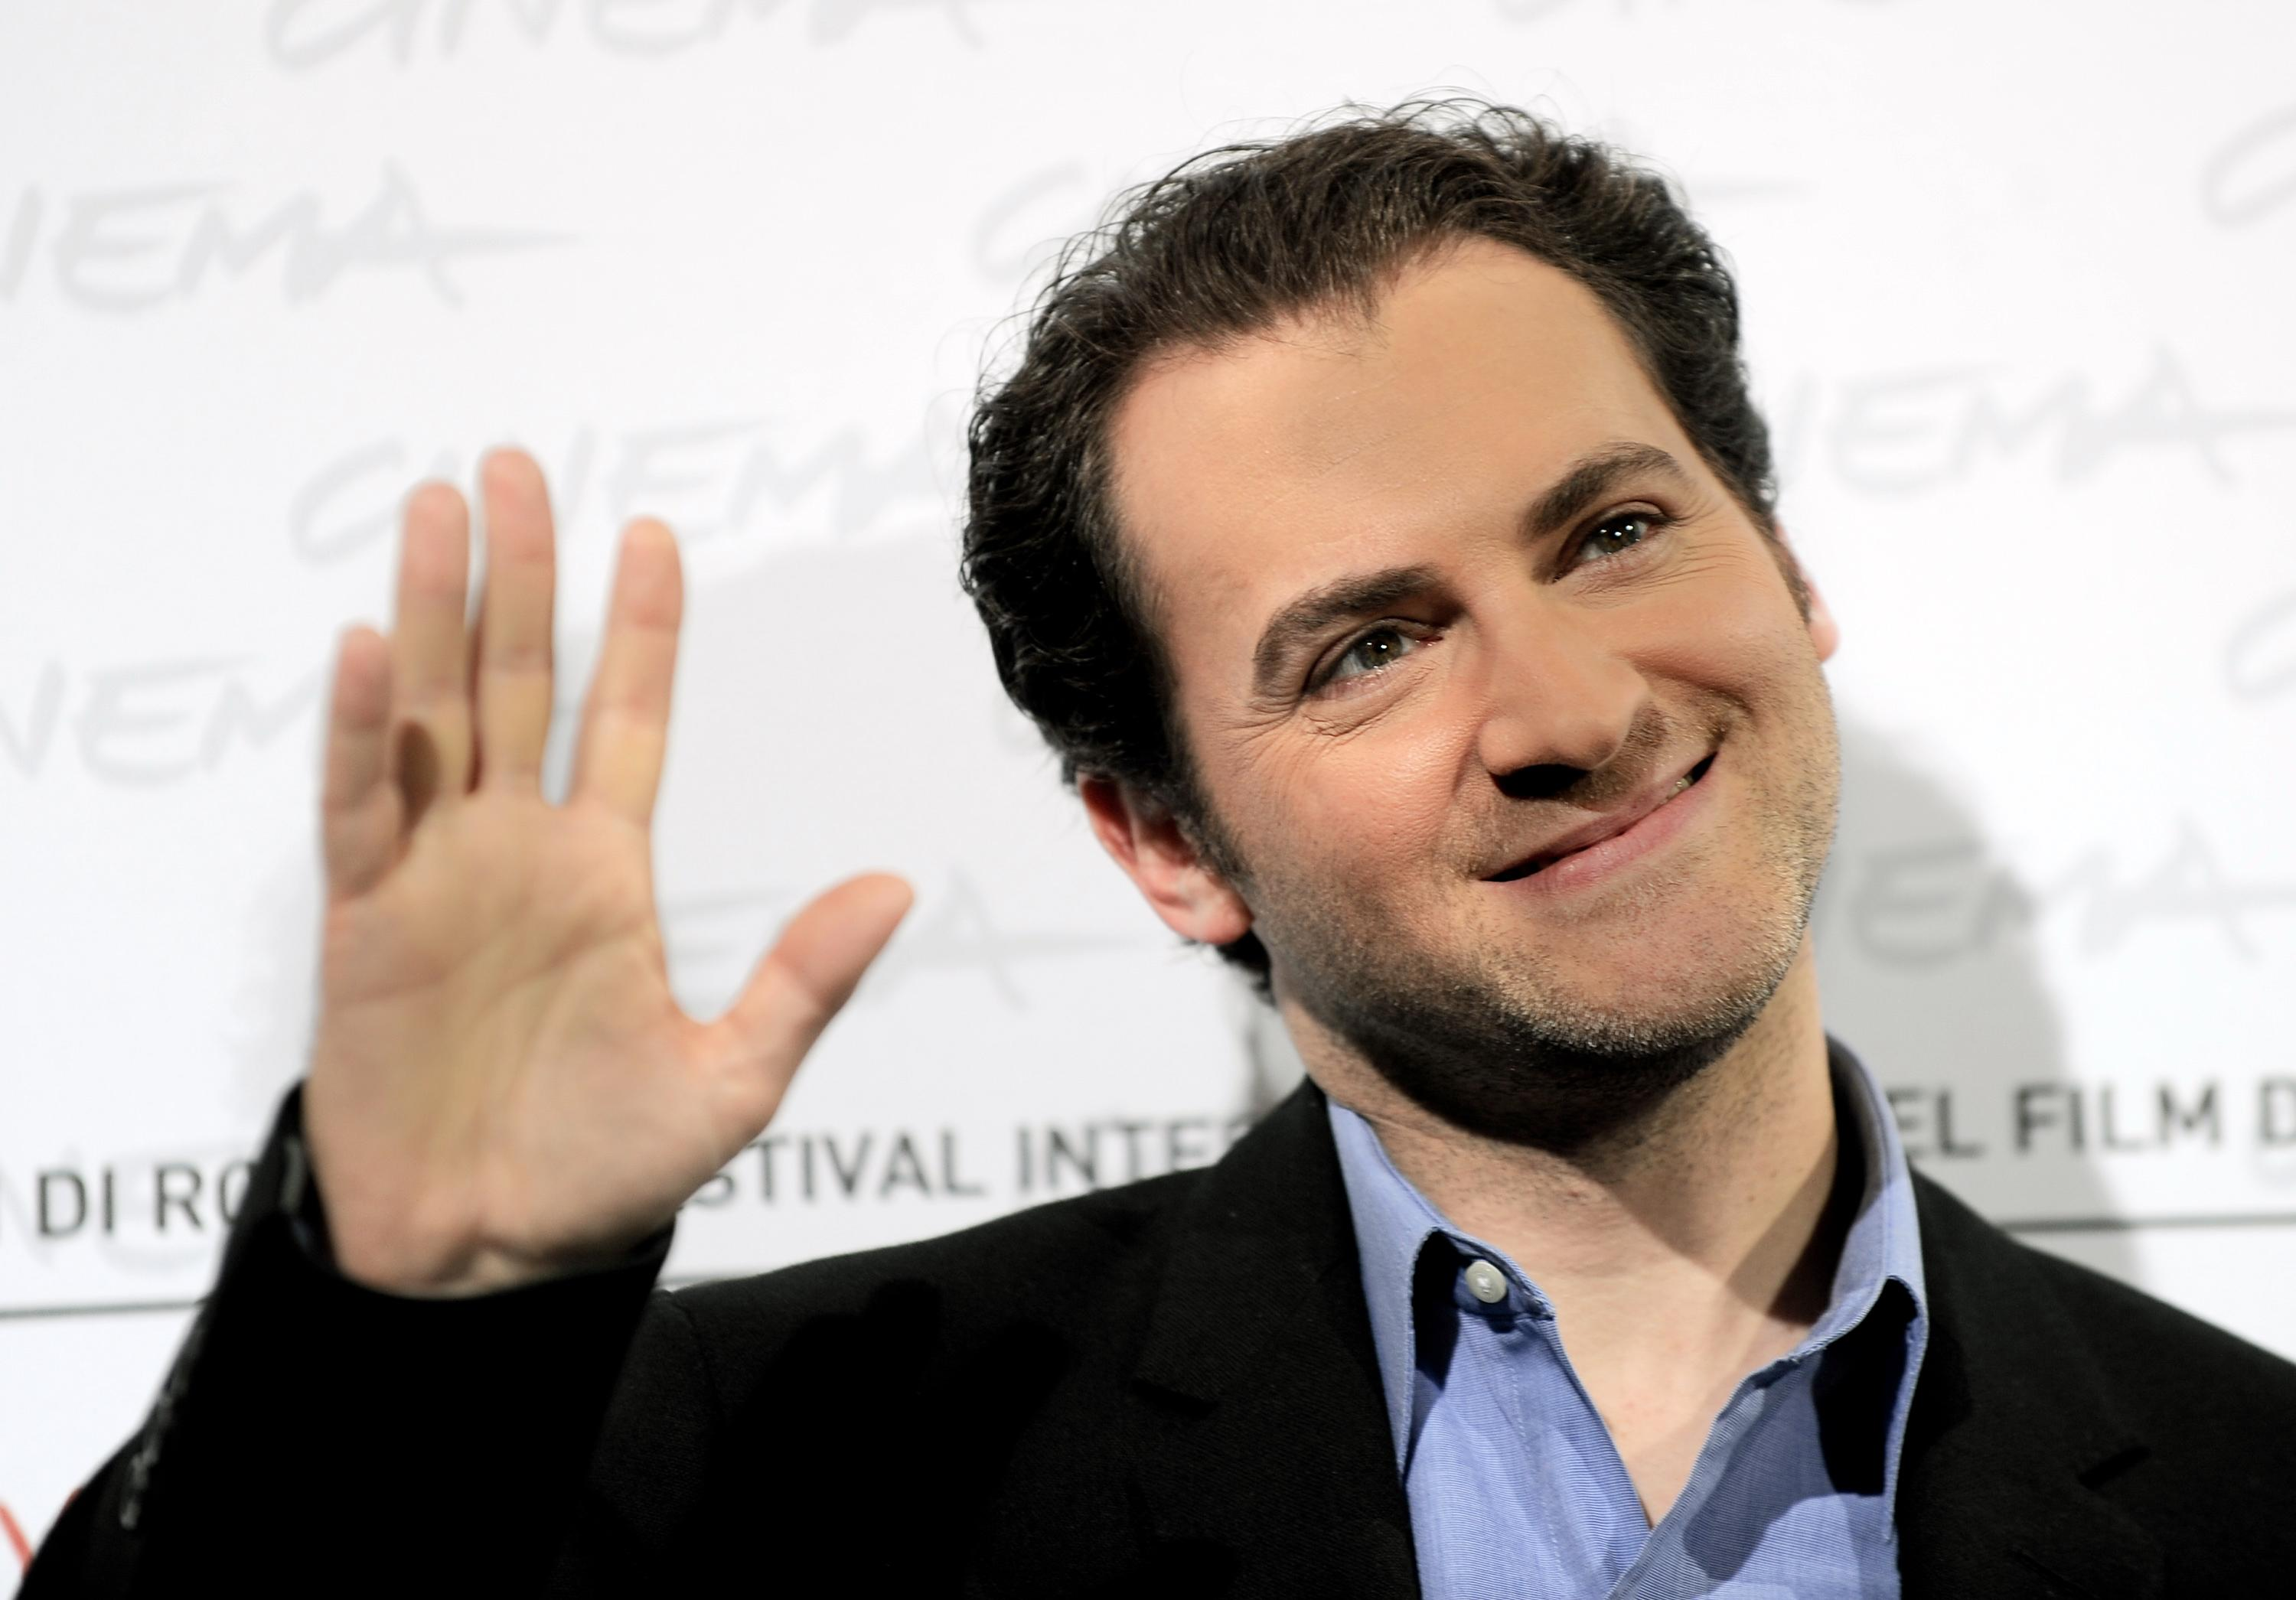 Michael Stuhlbarg to play key Apple developer in Steve Jobs biopic